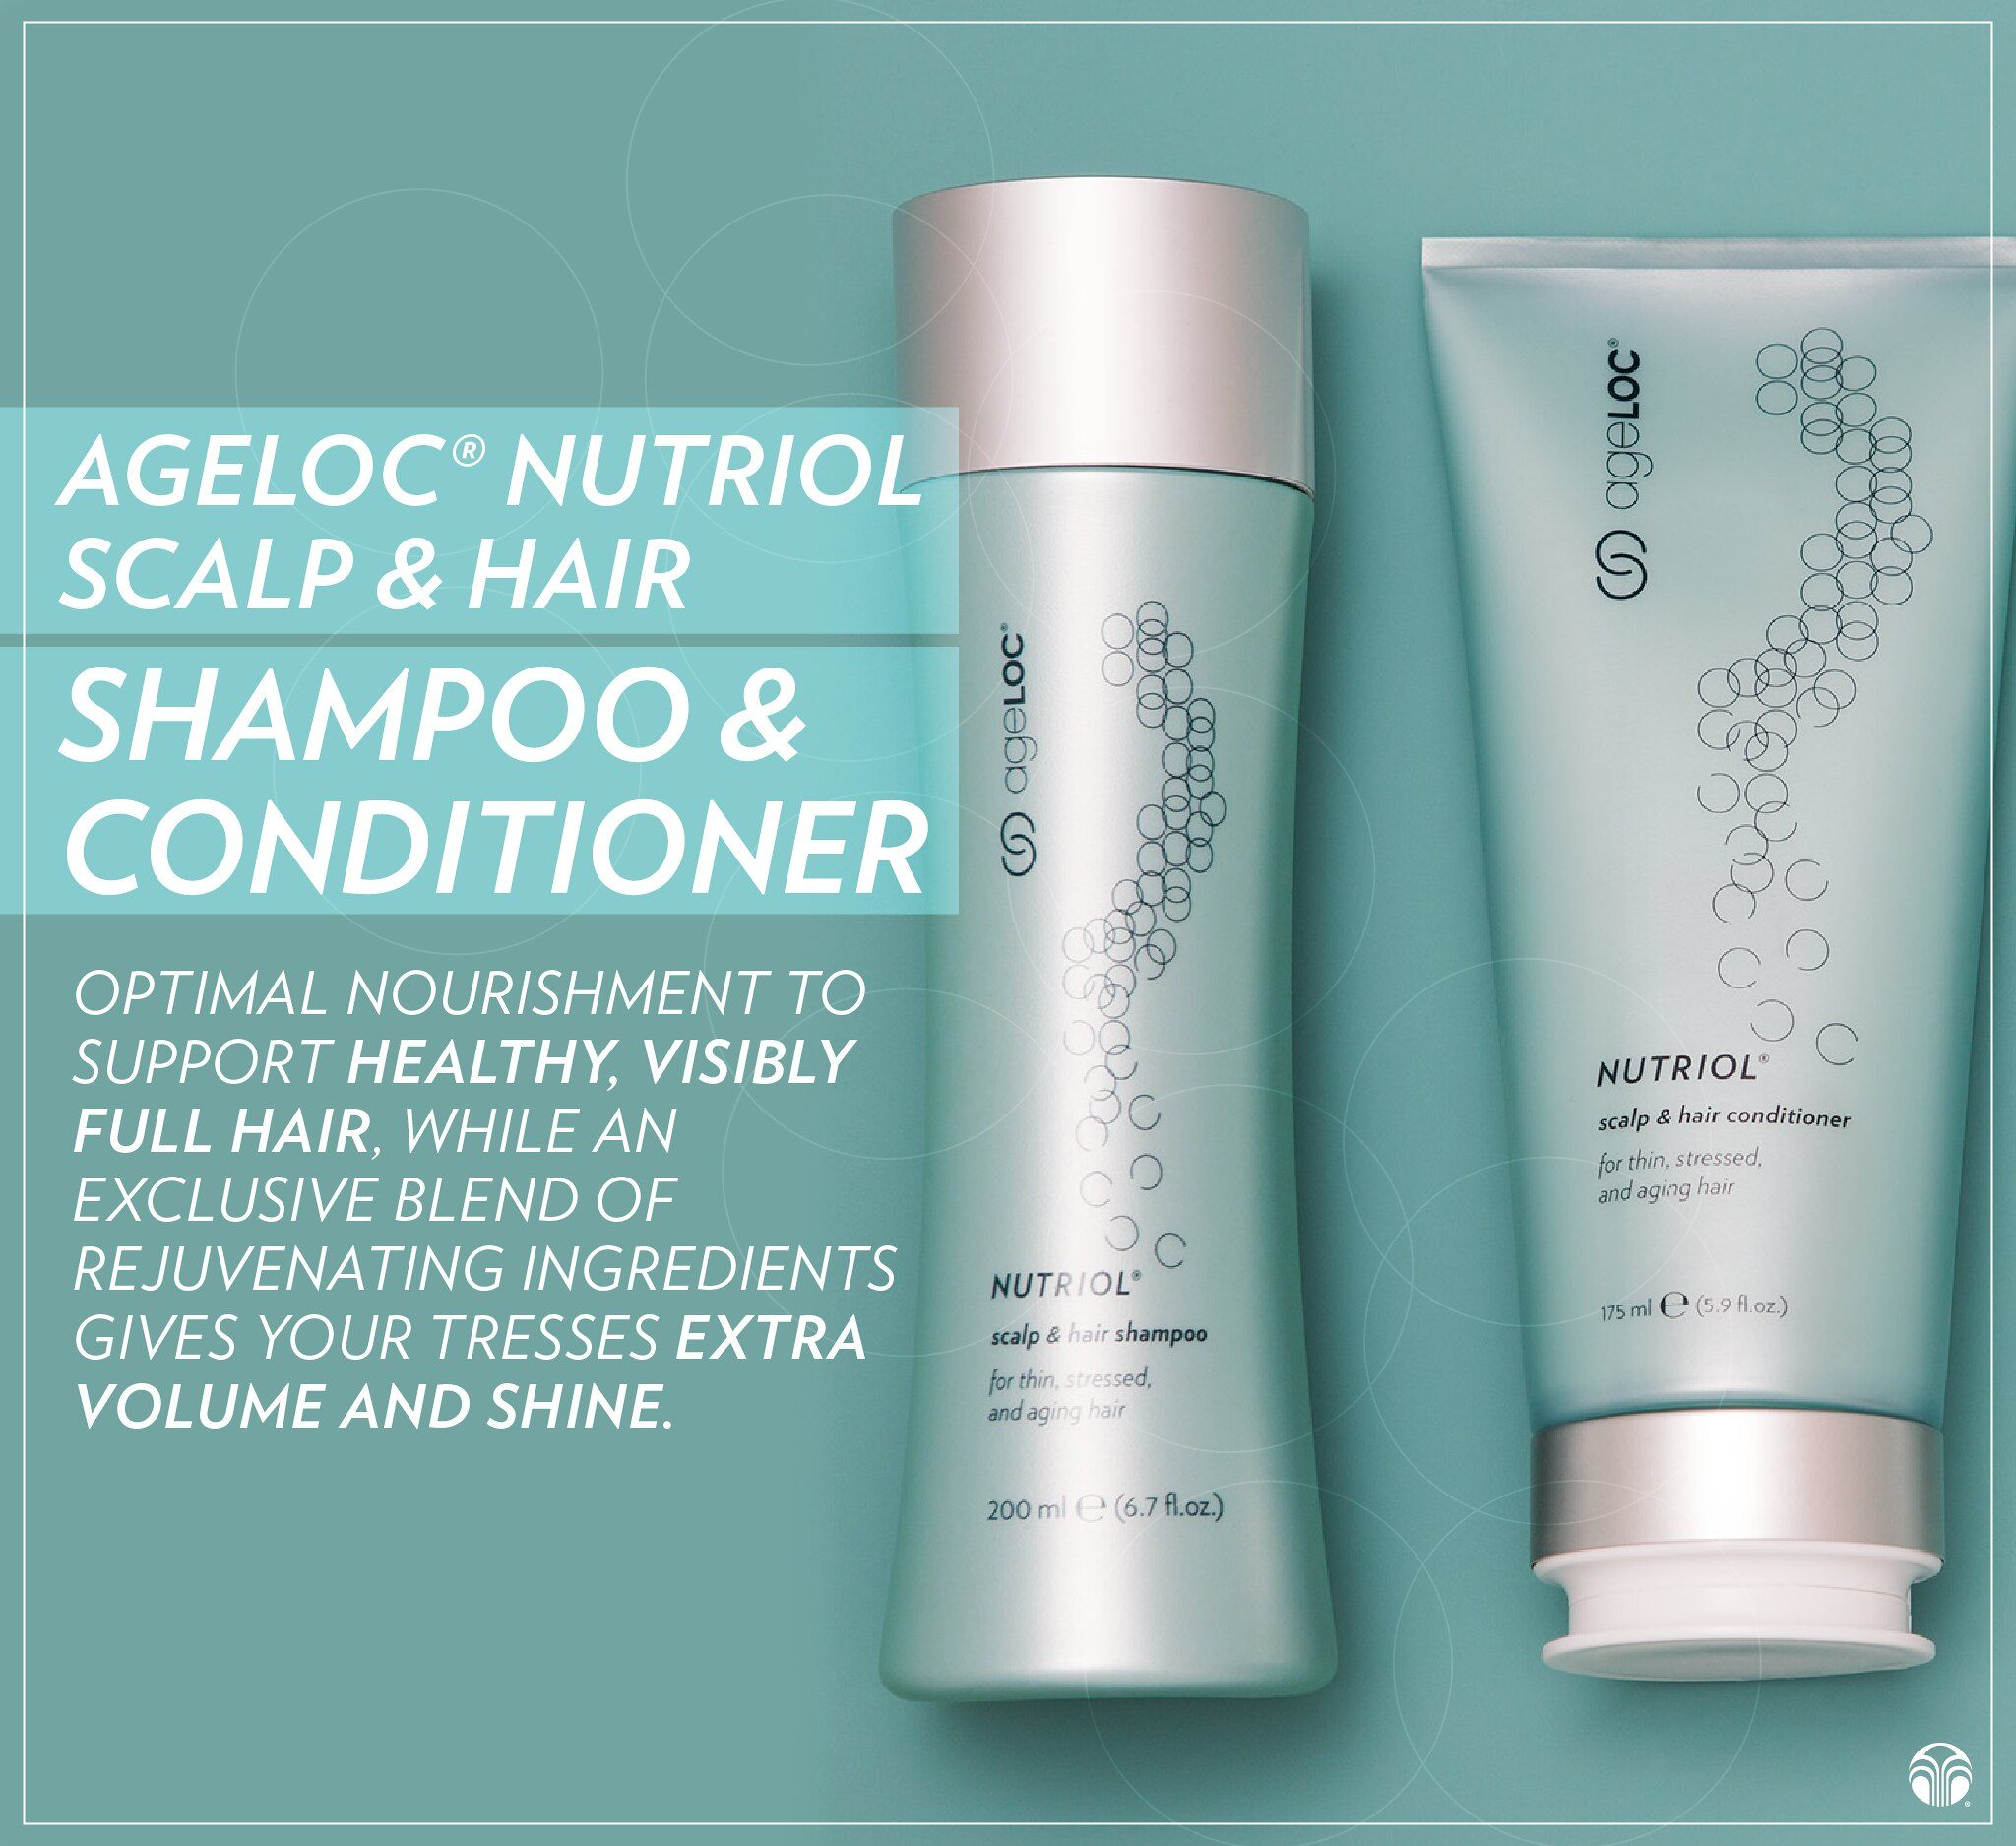 Combining ageLOC Scalp & Hair Shampoo with ageLOC Scalp